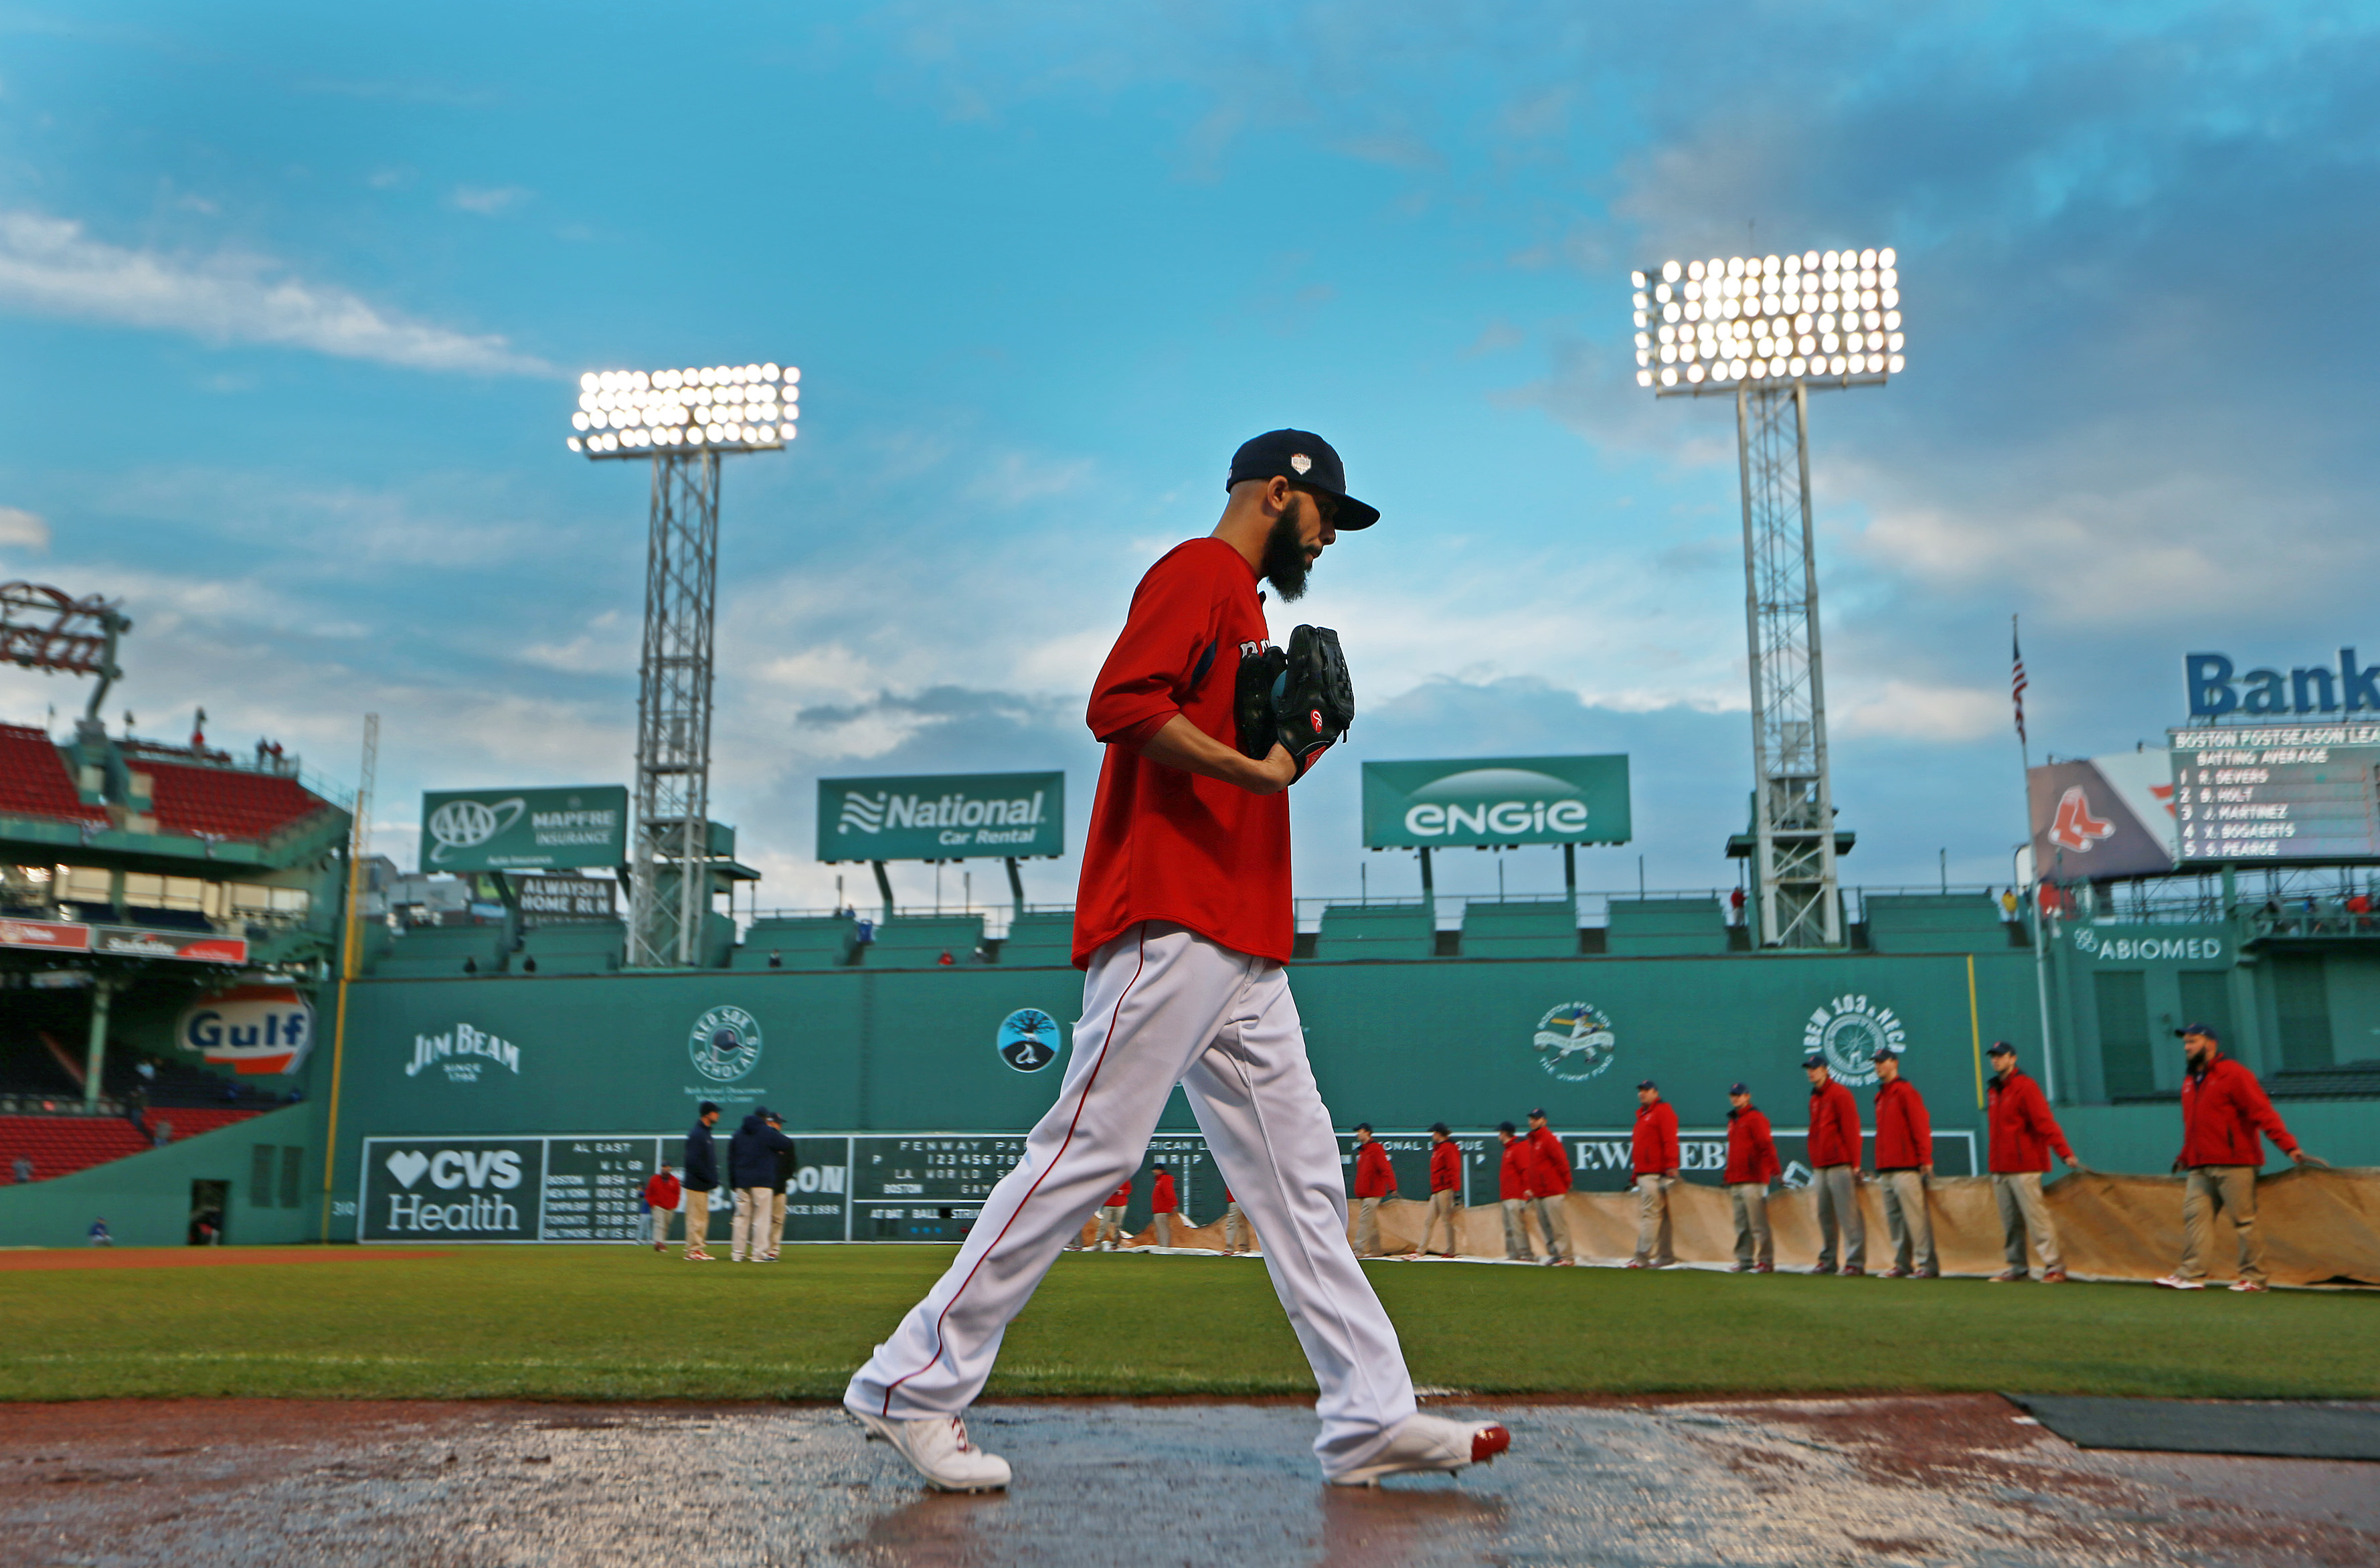 After a rain storm moved through the area, Red Sox Game Two scheduled starting pitcher David Price walked on the wet dirt, while in the background, the grounds crew, who had removed the tarp to clear it of standing water, were ready to put it back on over the infield. The Boston Red Sox hosted the Los Angeles Dodgers in Game One of the World Series at Fenway Park in Boston on Oct. 23, 2018.